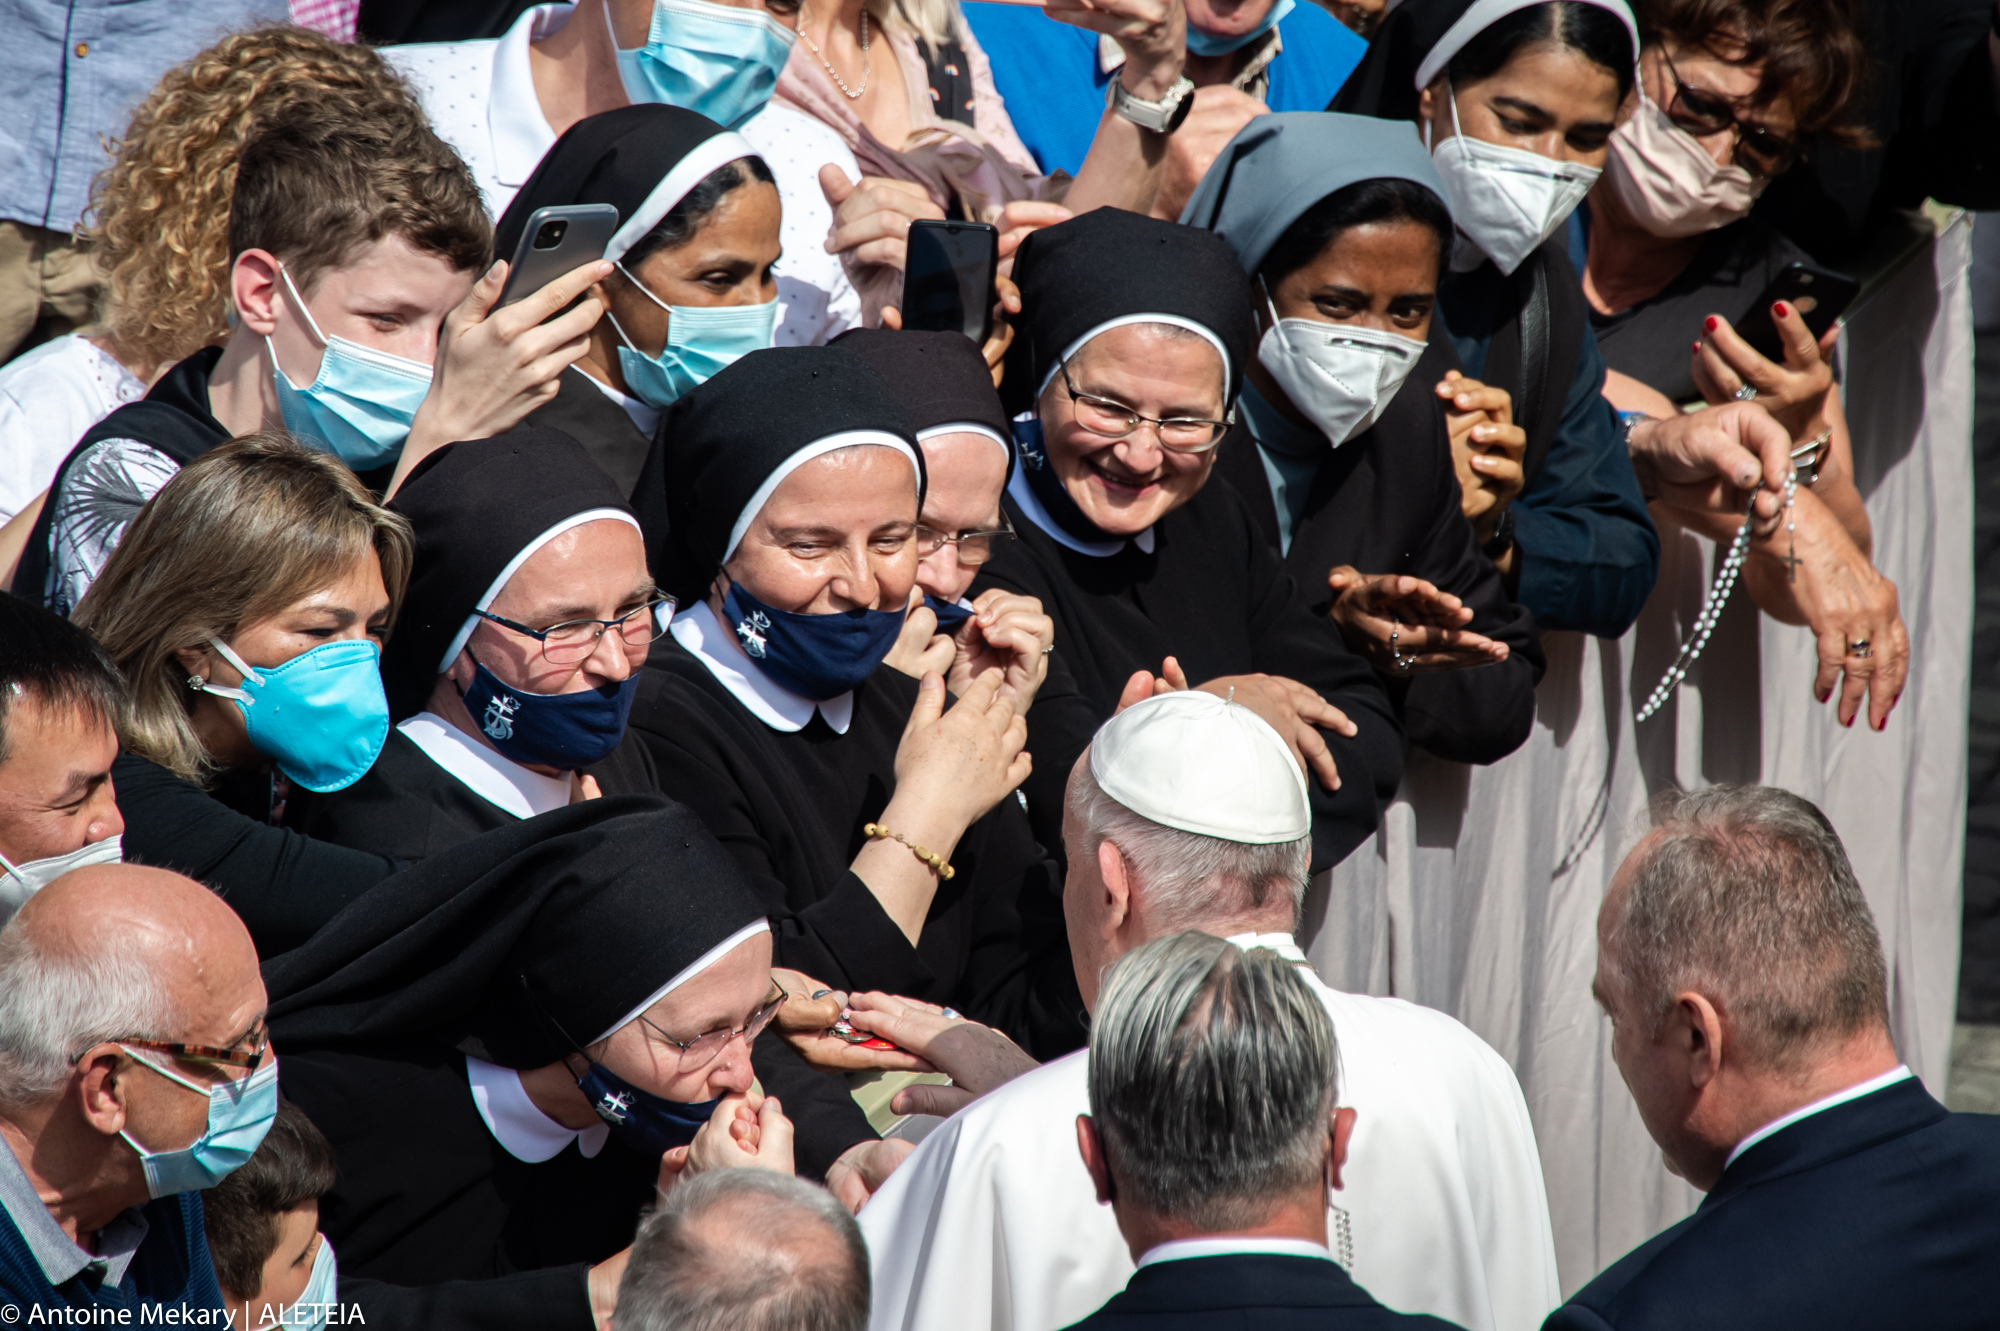 Pope: Prayer is the musical staff for the melody of life